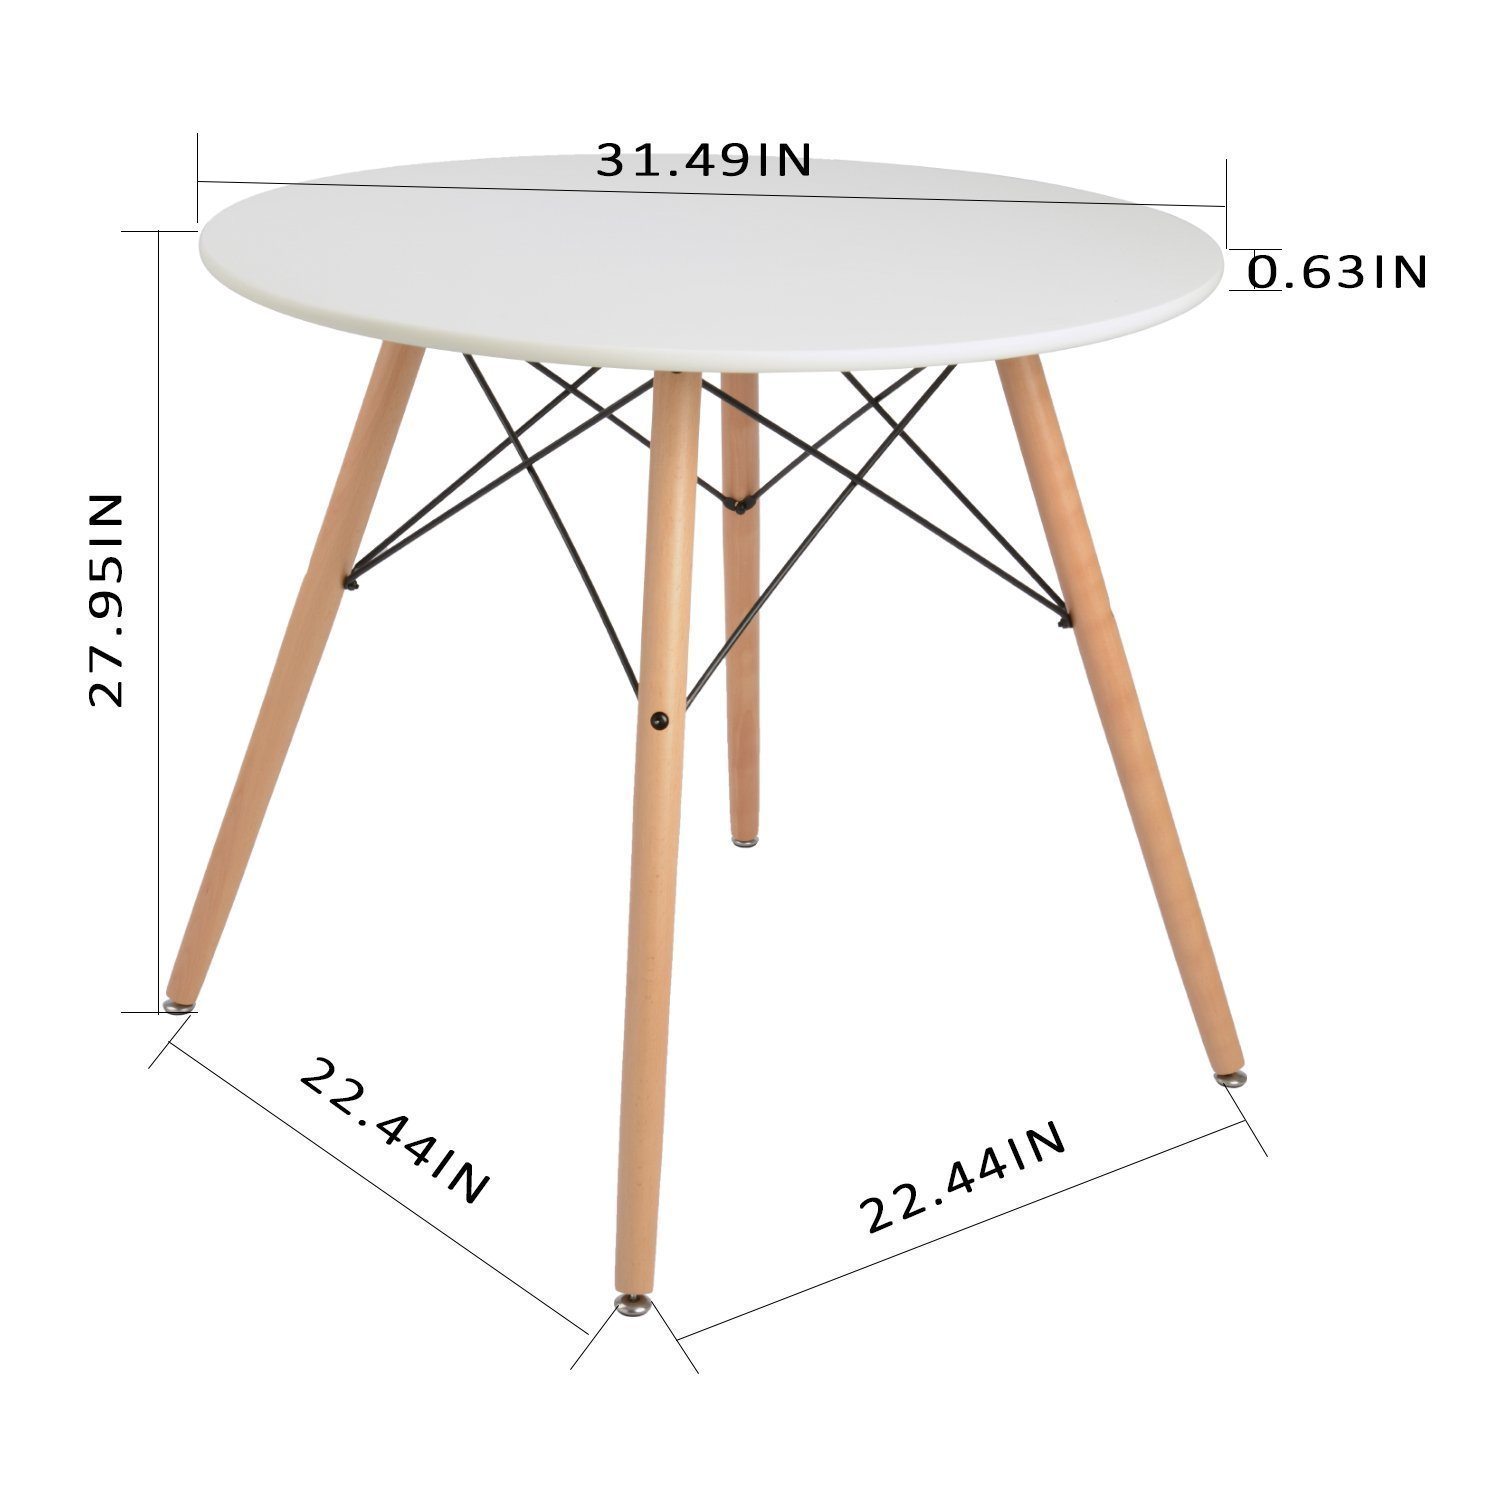 Coavas Kitchen Dining Table White Round Coffee Table Modern Leisure Wooden Tea Table Office Conference Pedestal Desk by Coavas (Image #10)